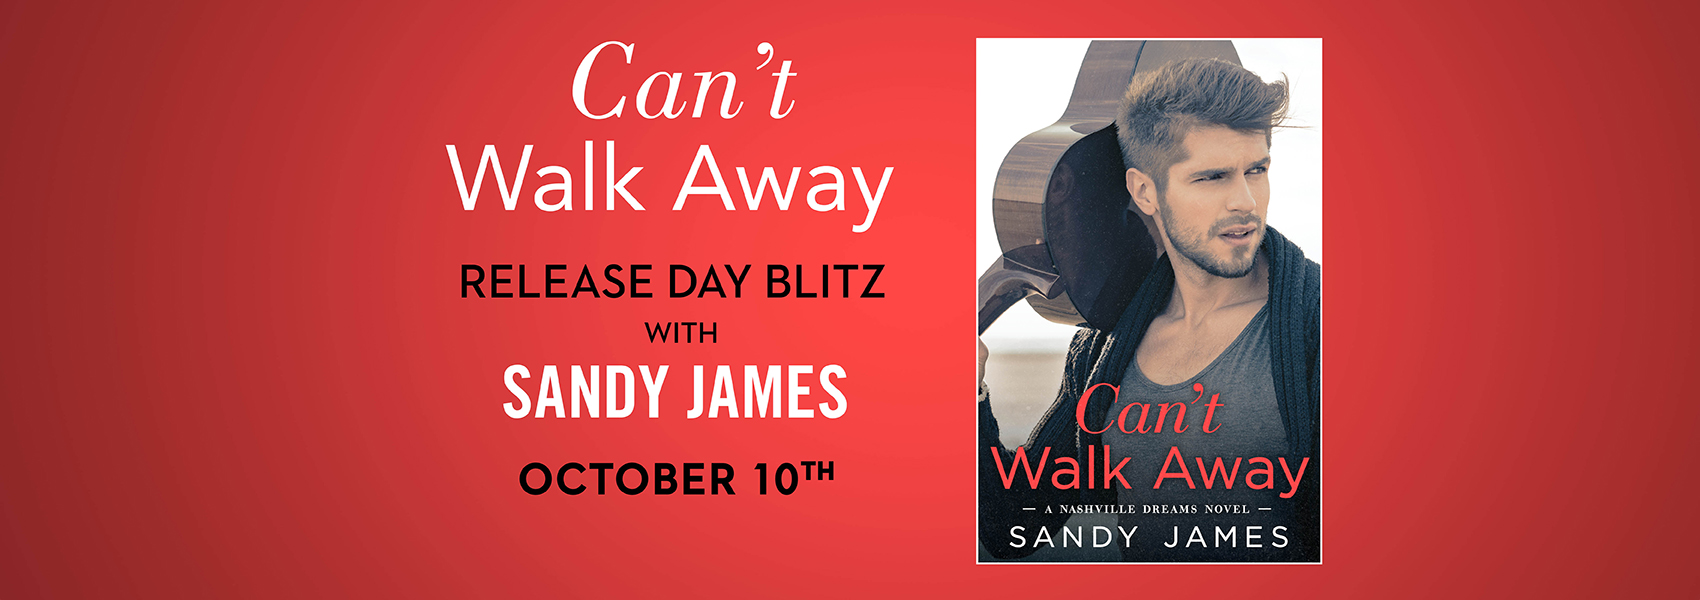 CAN'T WALK AWAY by Sandy James